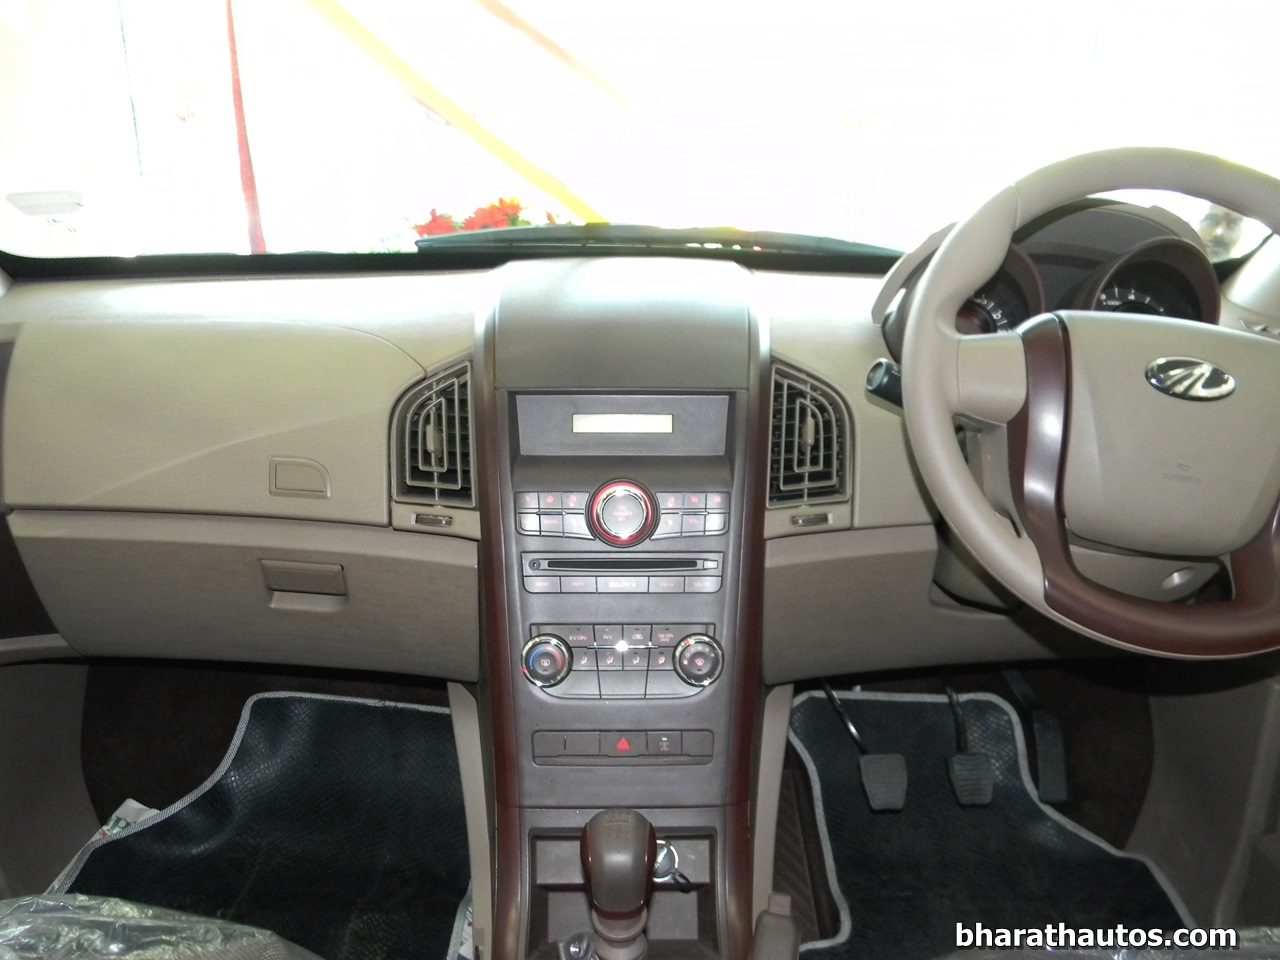 Mahindra Xuv500 W4 More Features Costs Less Not Bare Bones